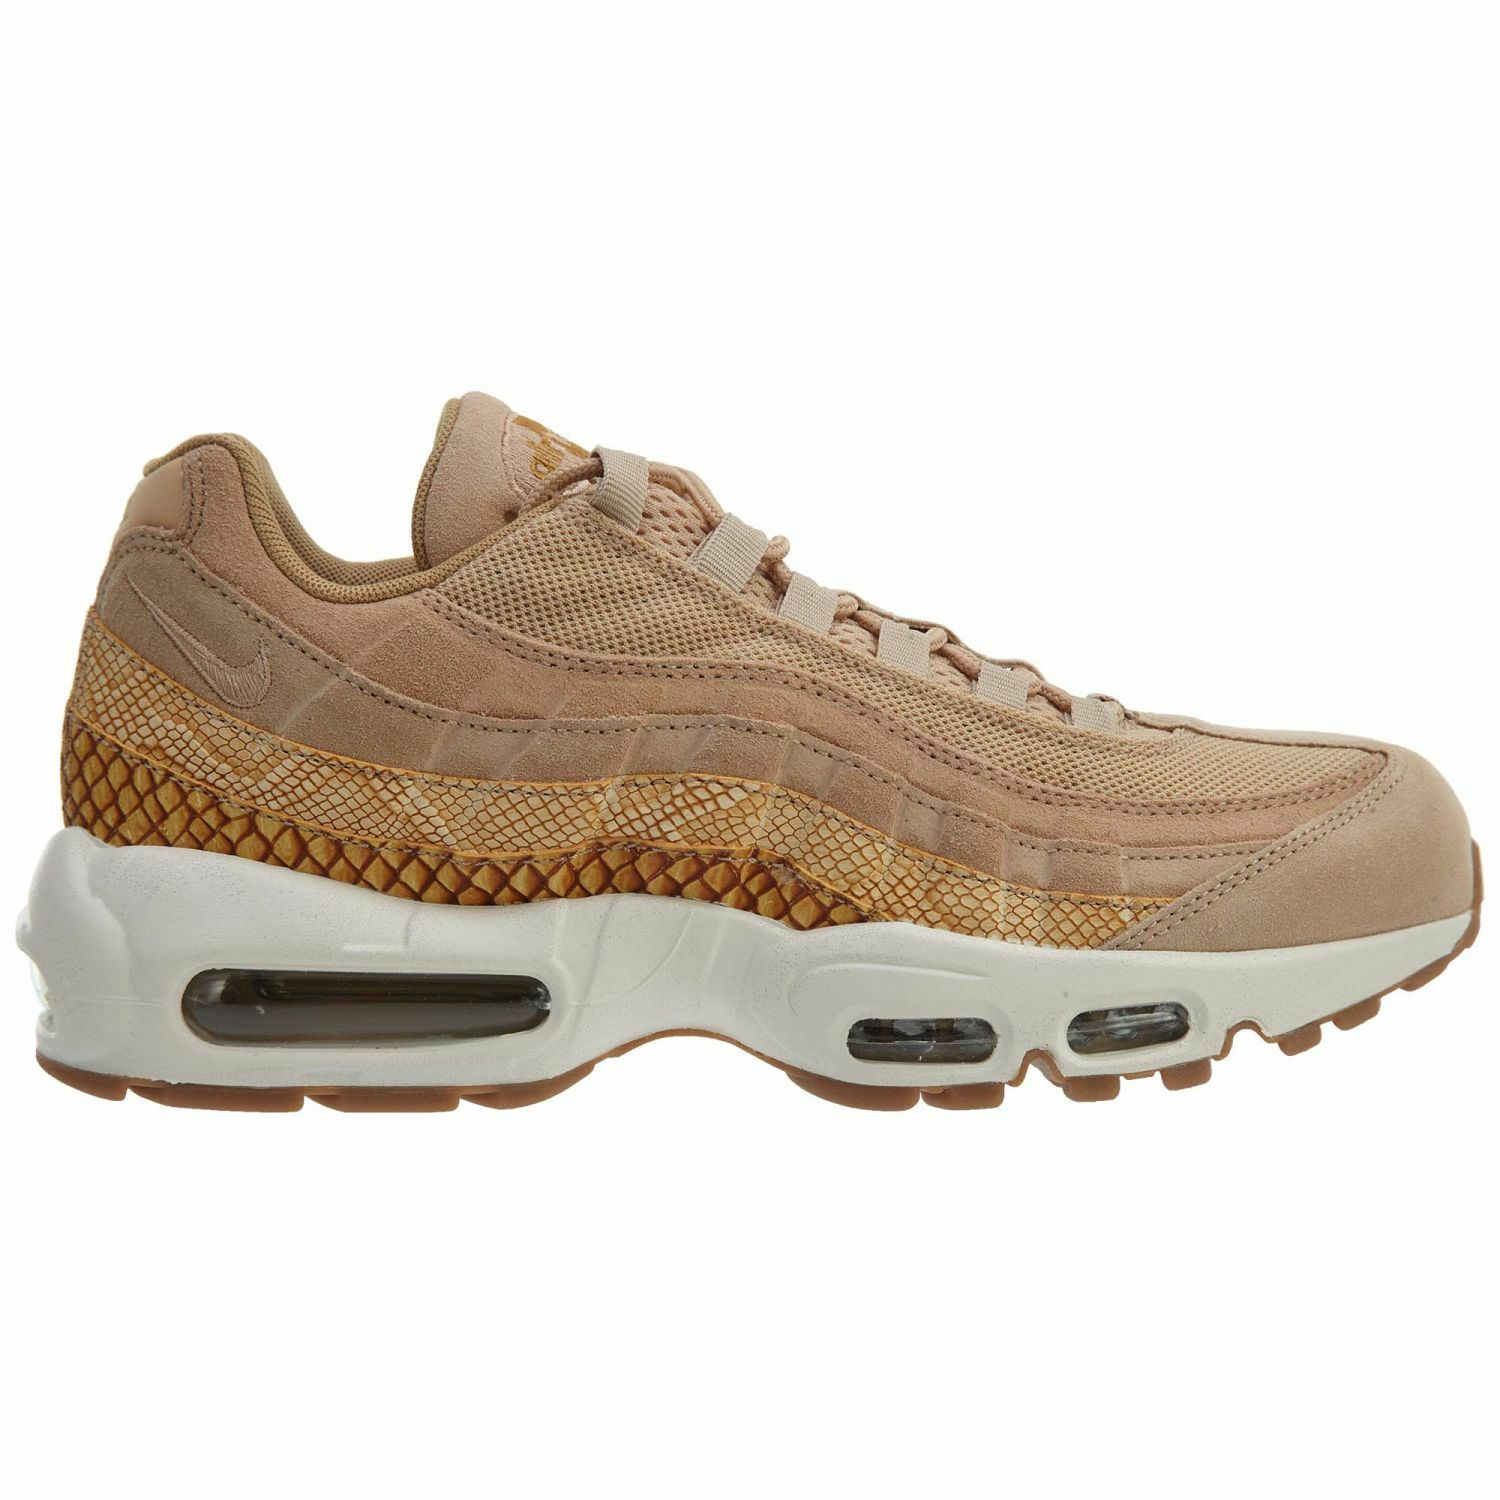 Nike Air Max 95 Premium SE Mens 924478-201 Vachetta Tan Running Shoes Size 8